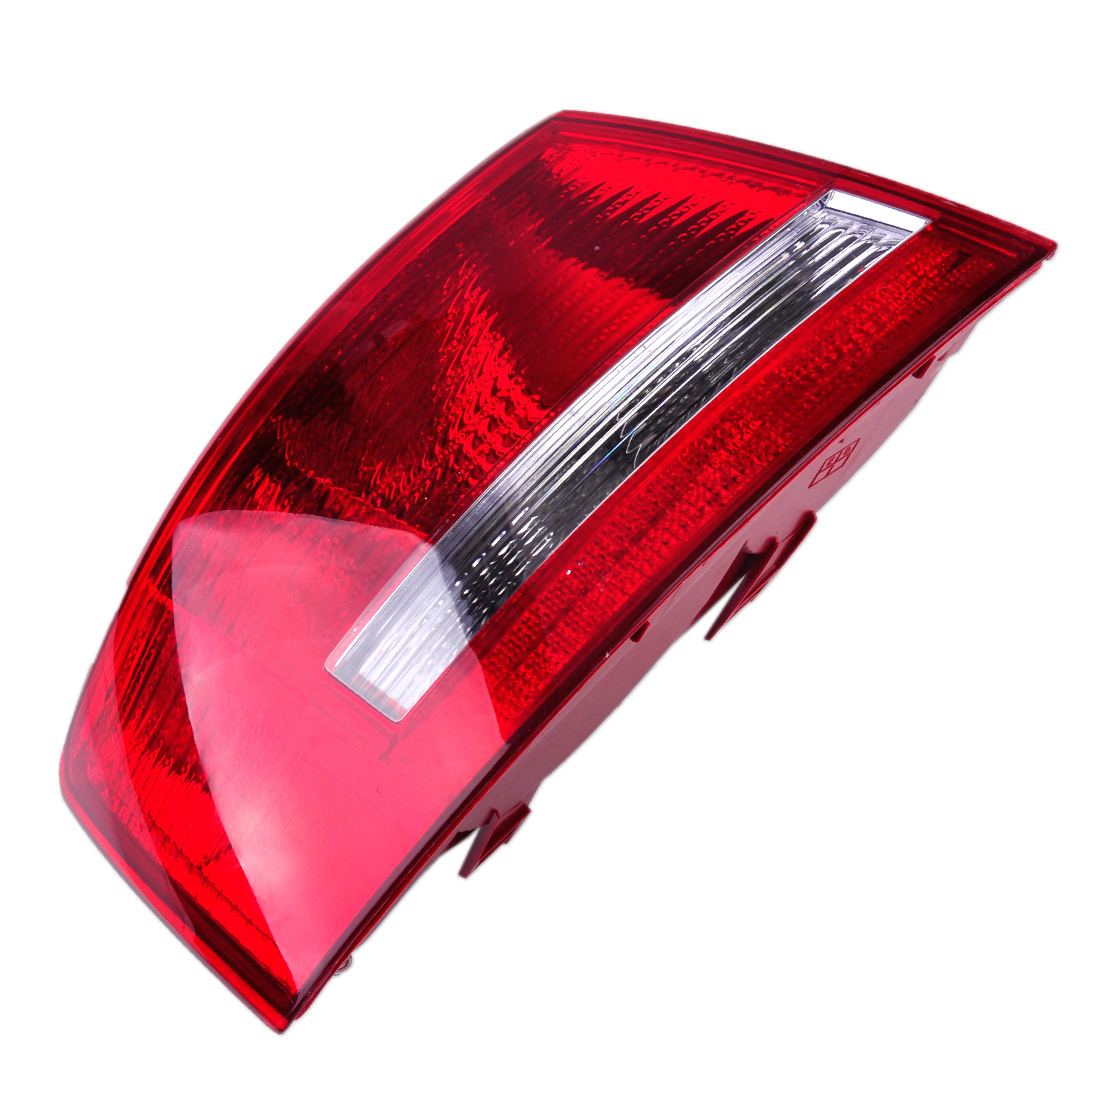 beler Car Left Tail Light Assembly Lamp Housing without Bulb 4F5945095L 4F5945095D for Audi A6 /A6 Quattro Sedan 2005 2006 -2008 free shipping for skoda octavia sedan a5 2005 2006 2007 2008 left side rear lamp tail light